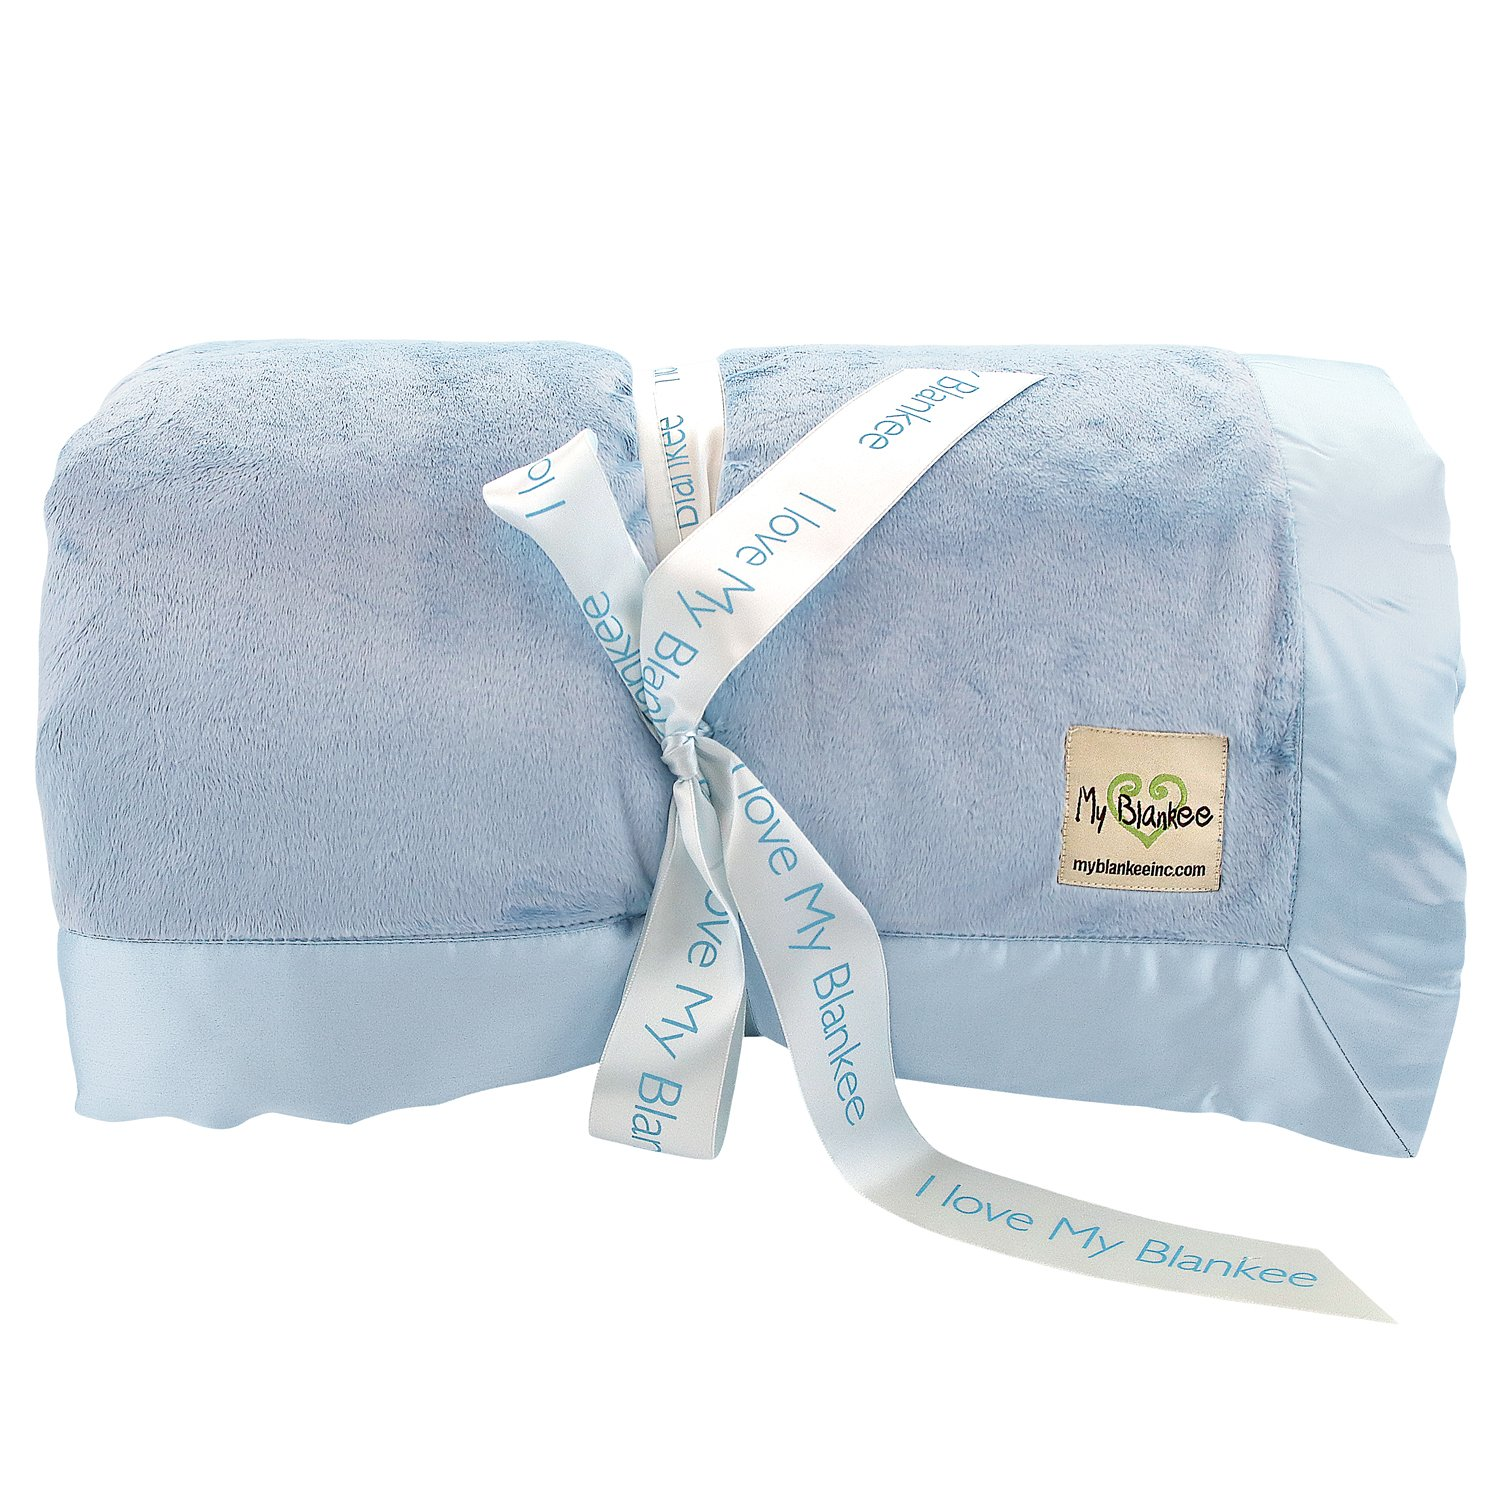 My Blankee Minky Solid King Blanket with Flat Satin Border, Blue, 108'' x 90''